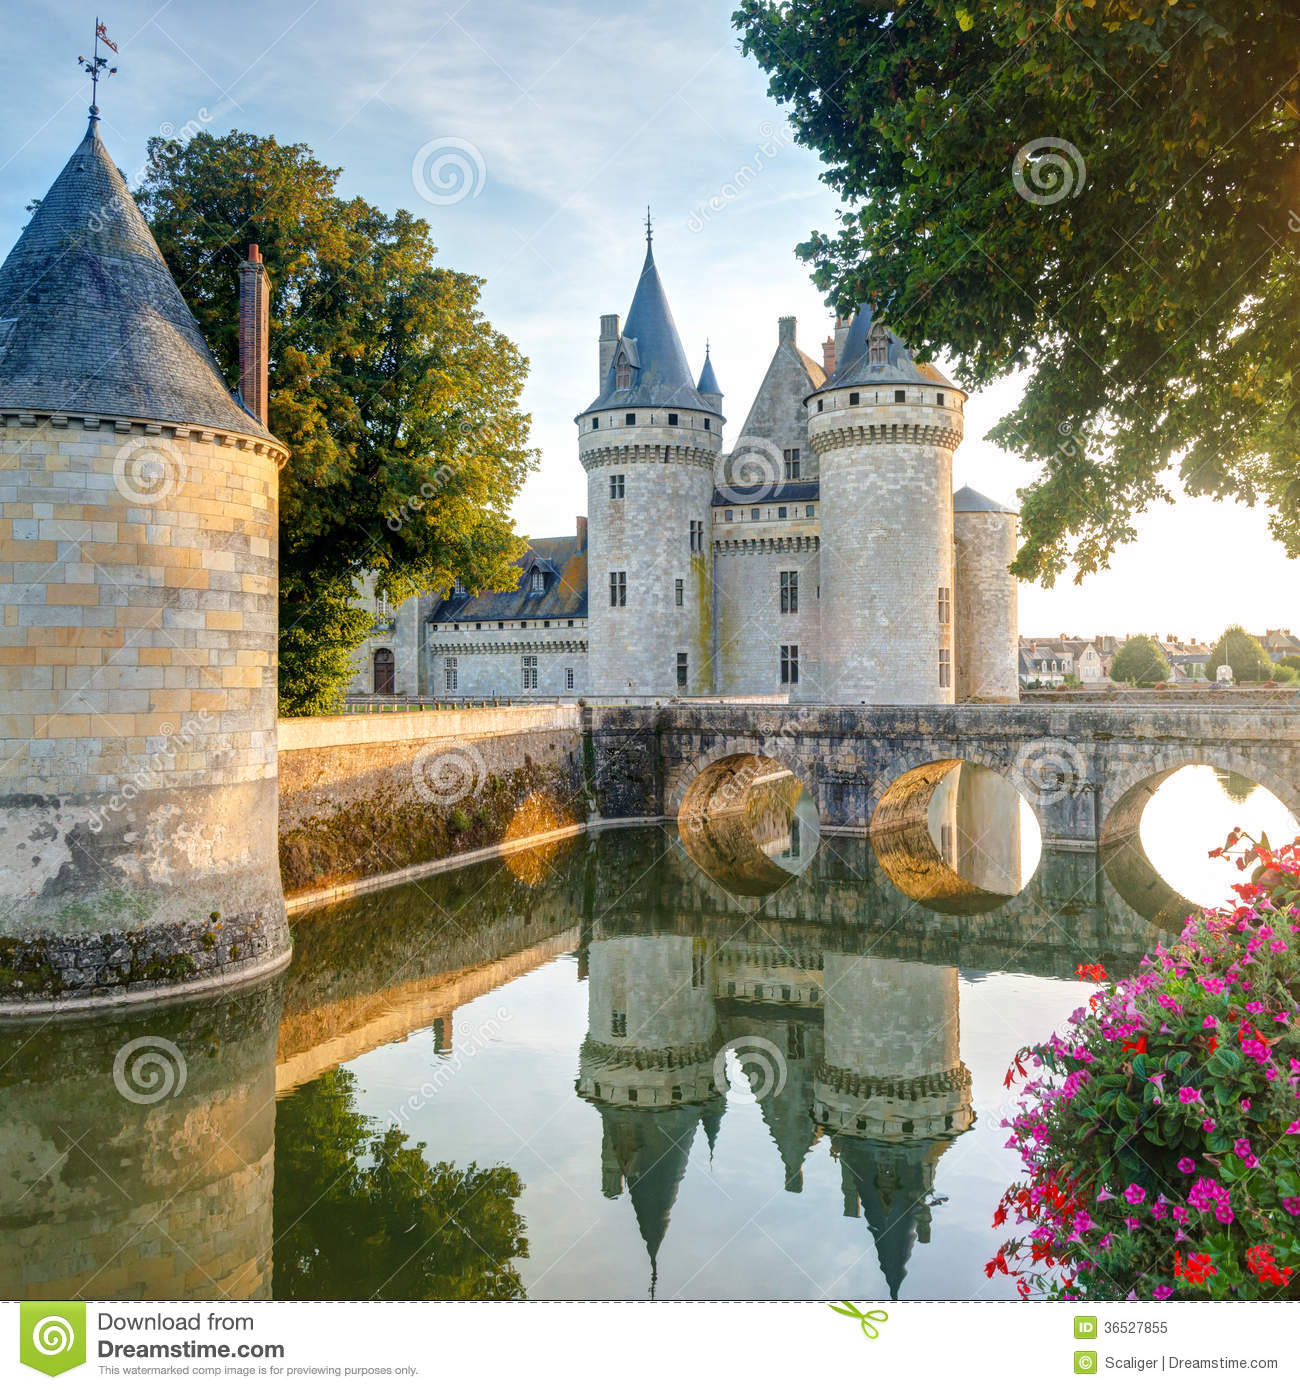 The chateau of sully sur loire france stock image image for Clair logis sully sur loire